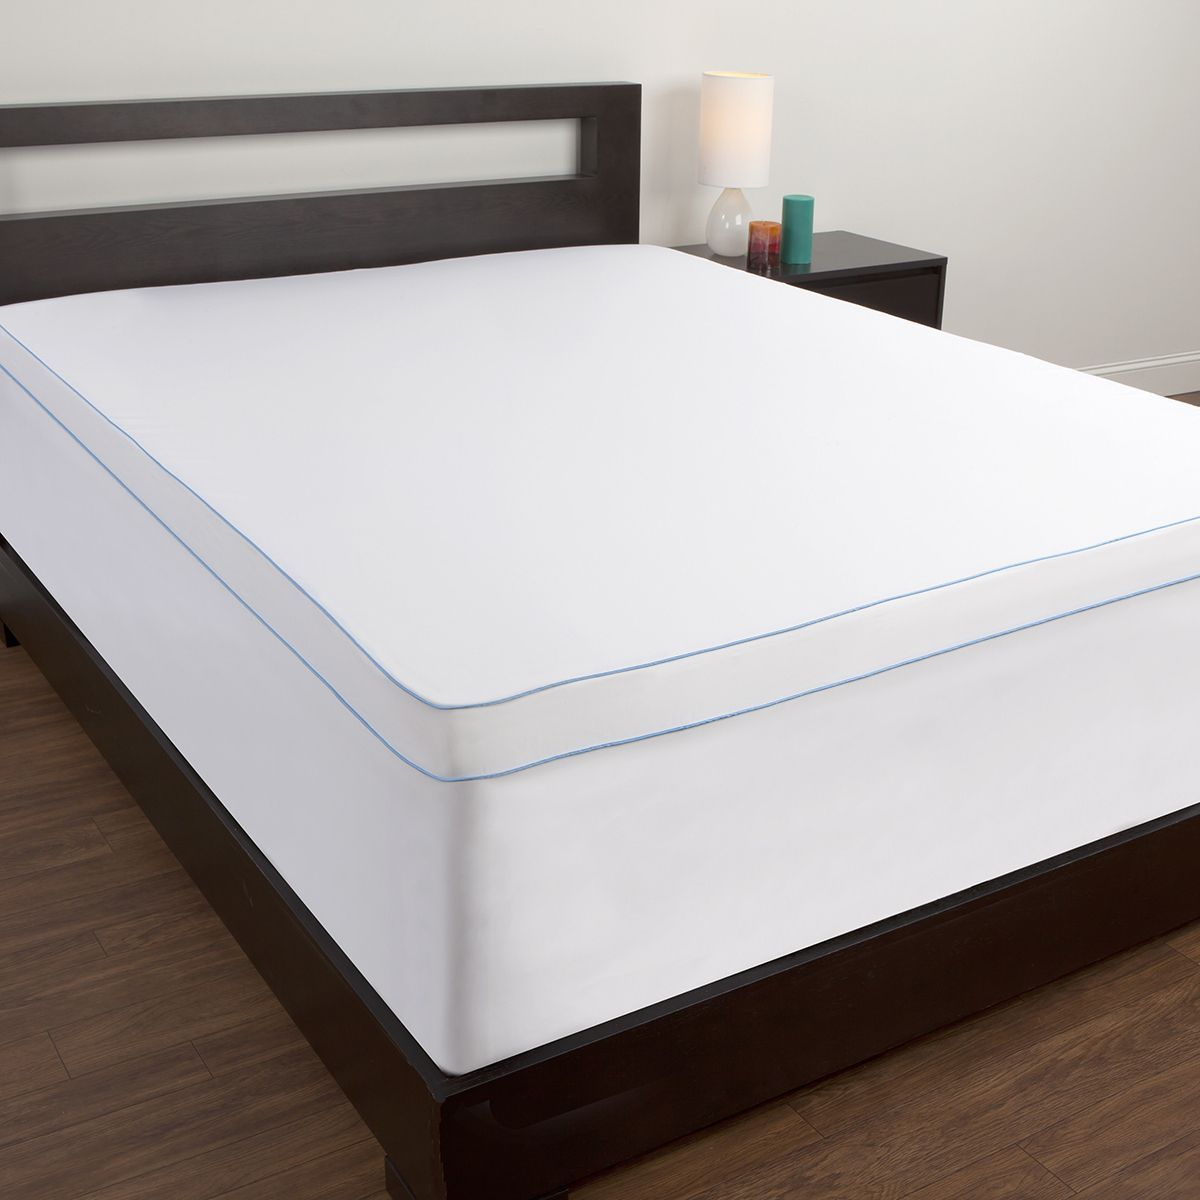 fitted best top night memory mattress great foam exceptionalsheets for with nights skirt a topper toppers s sleep